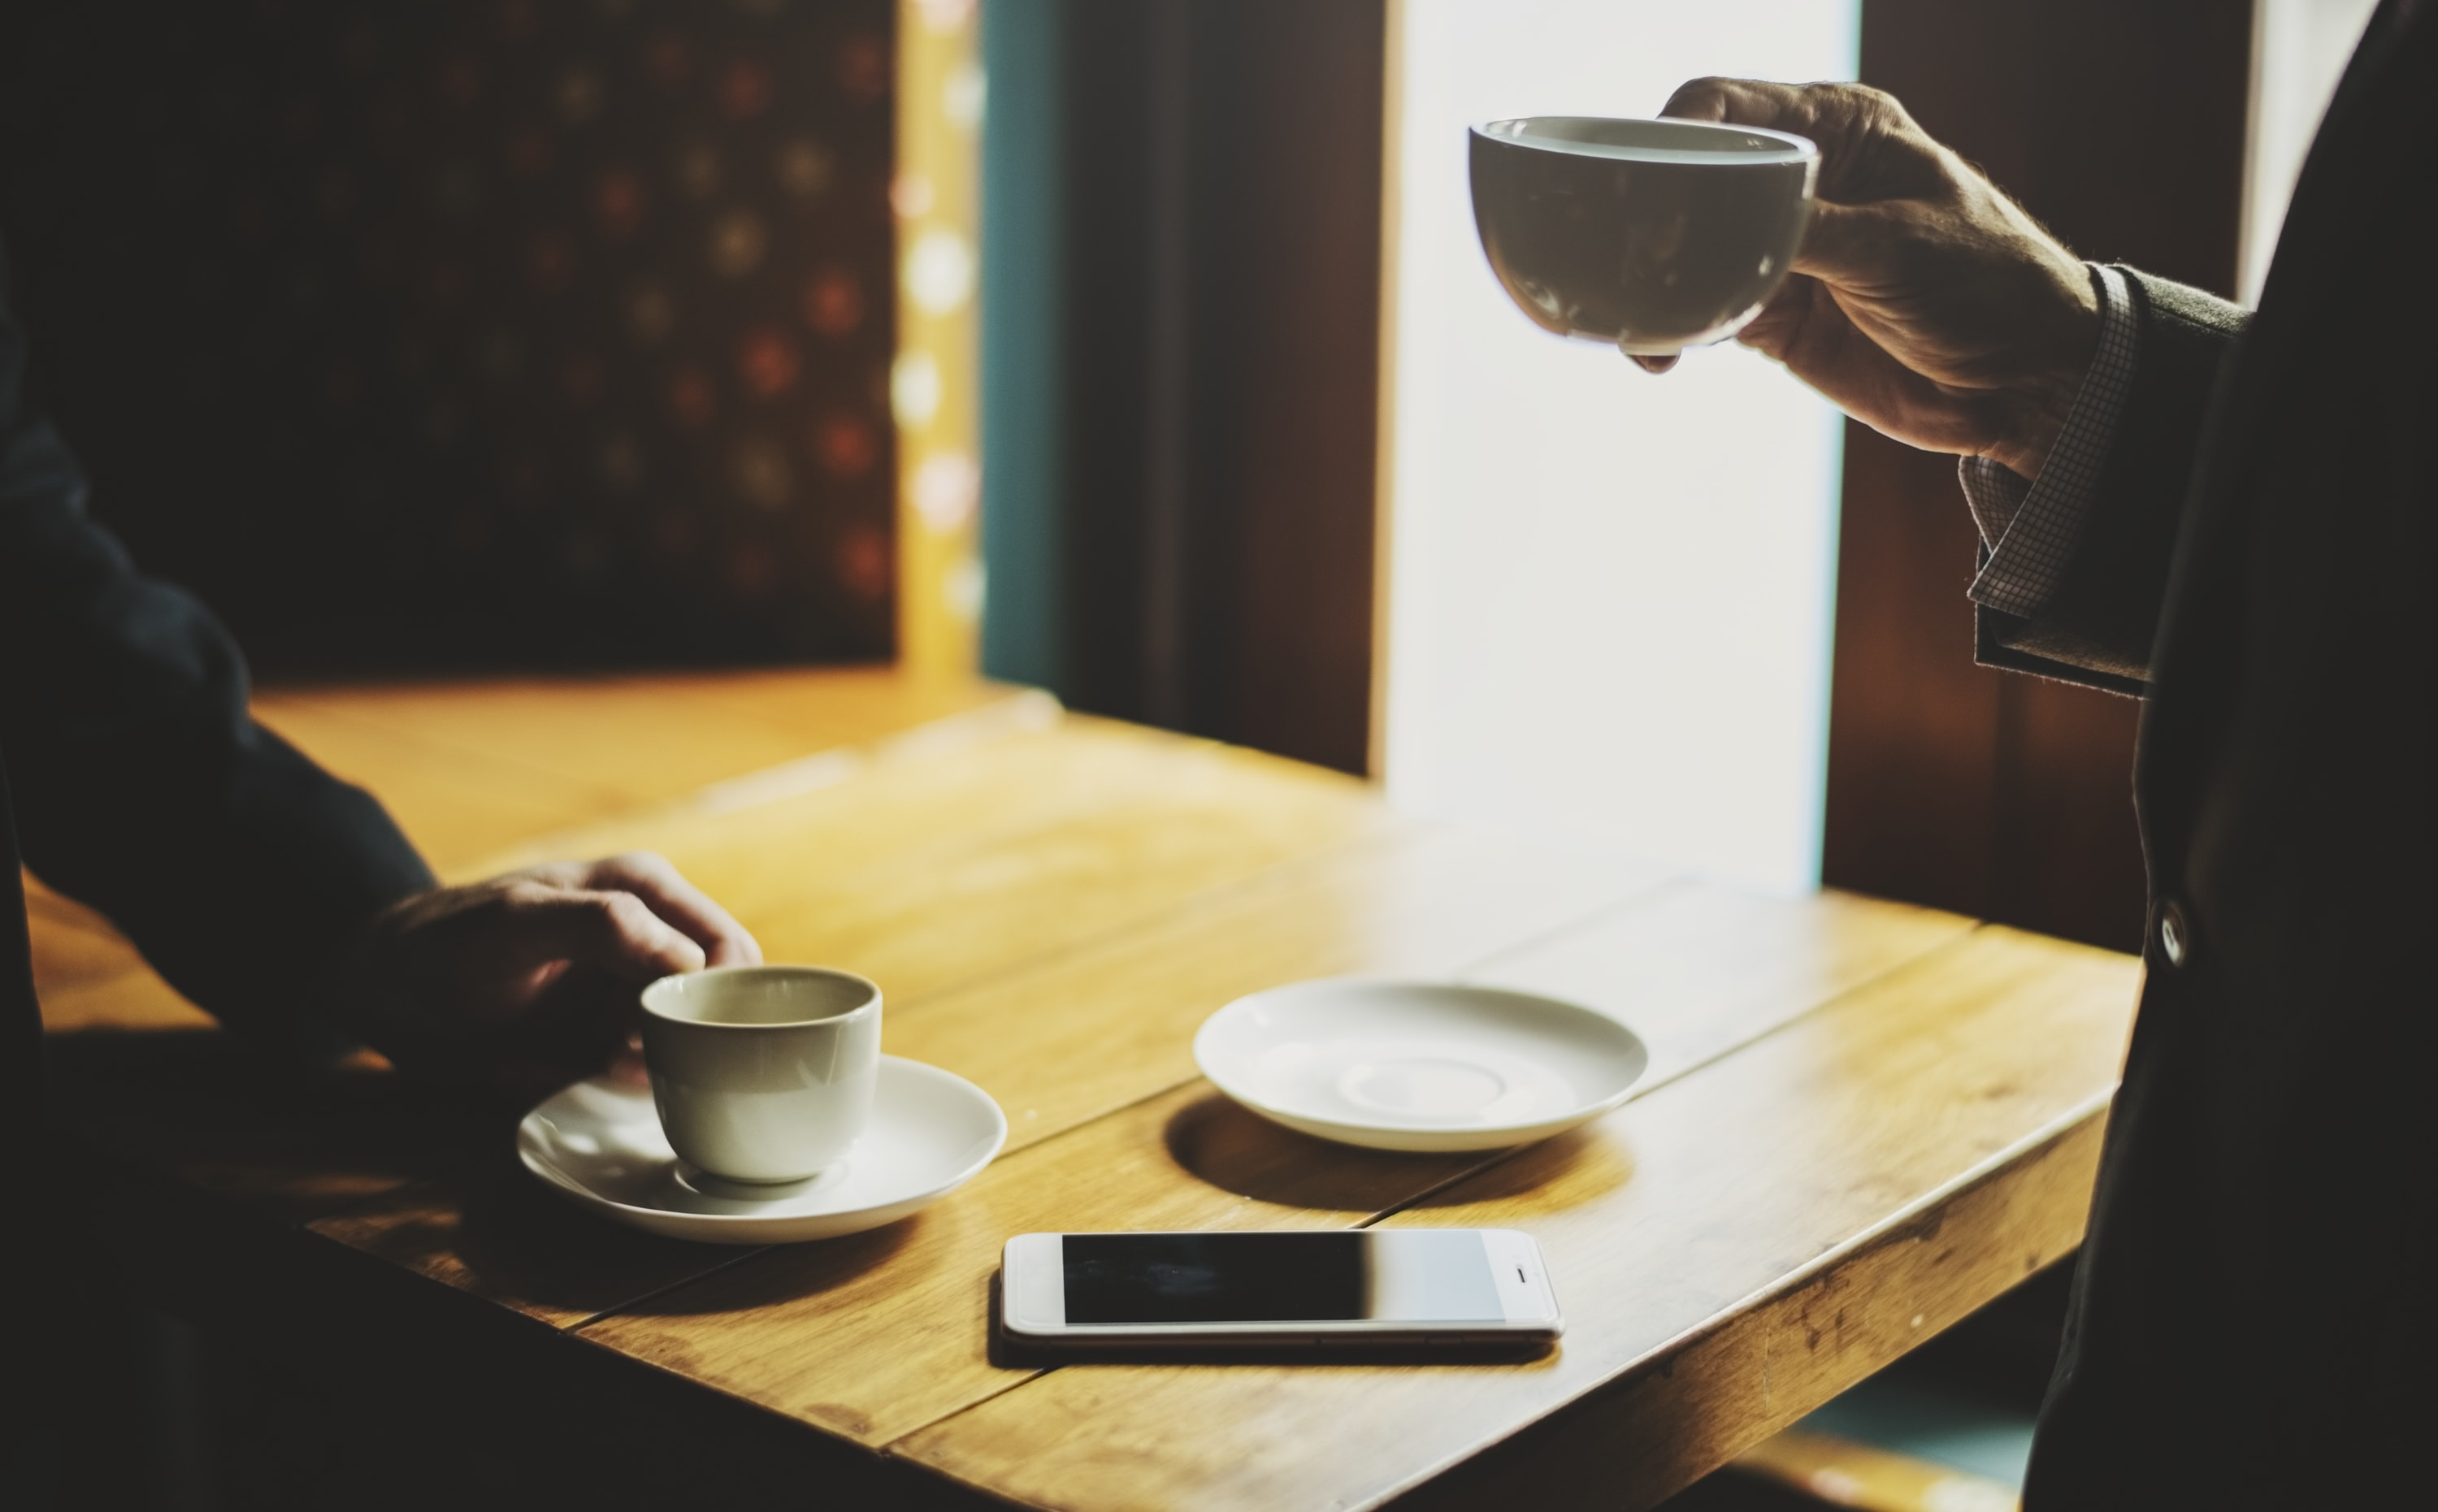 person holding white ceramic cup infront of person near the brown wooden table